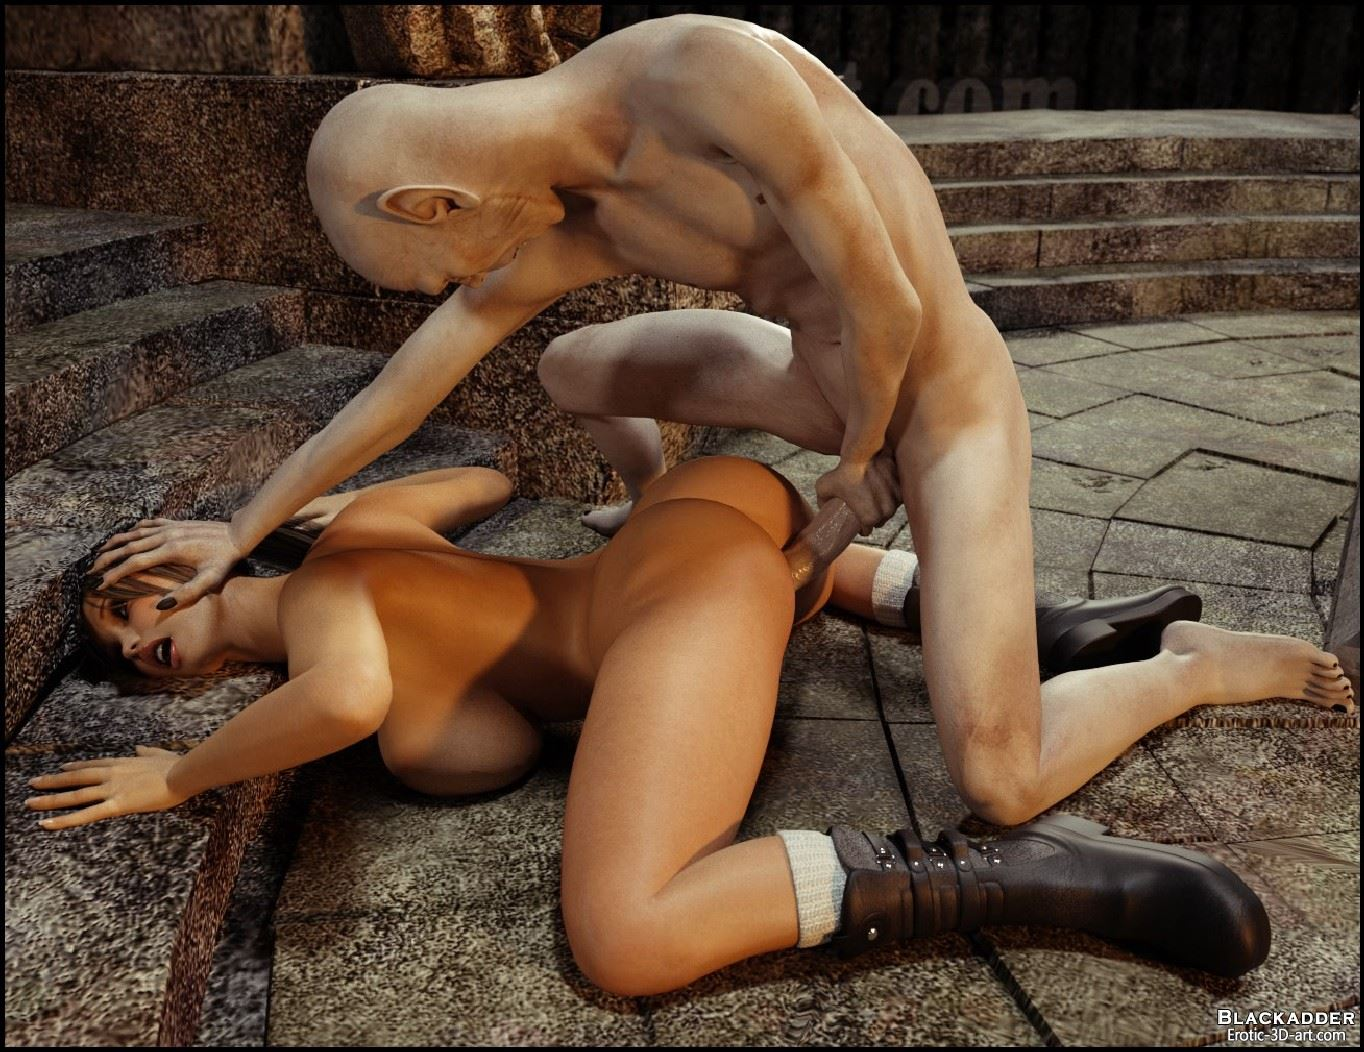 Images of 3d monster sexlara croft fucked  erotic clips